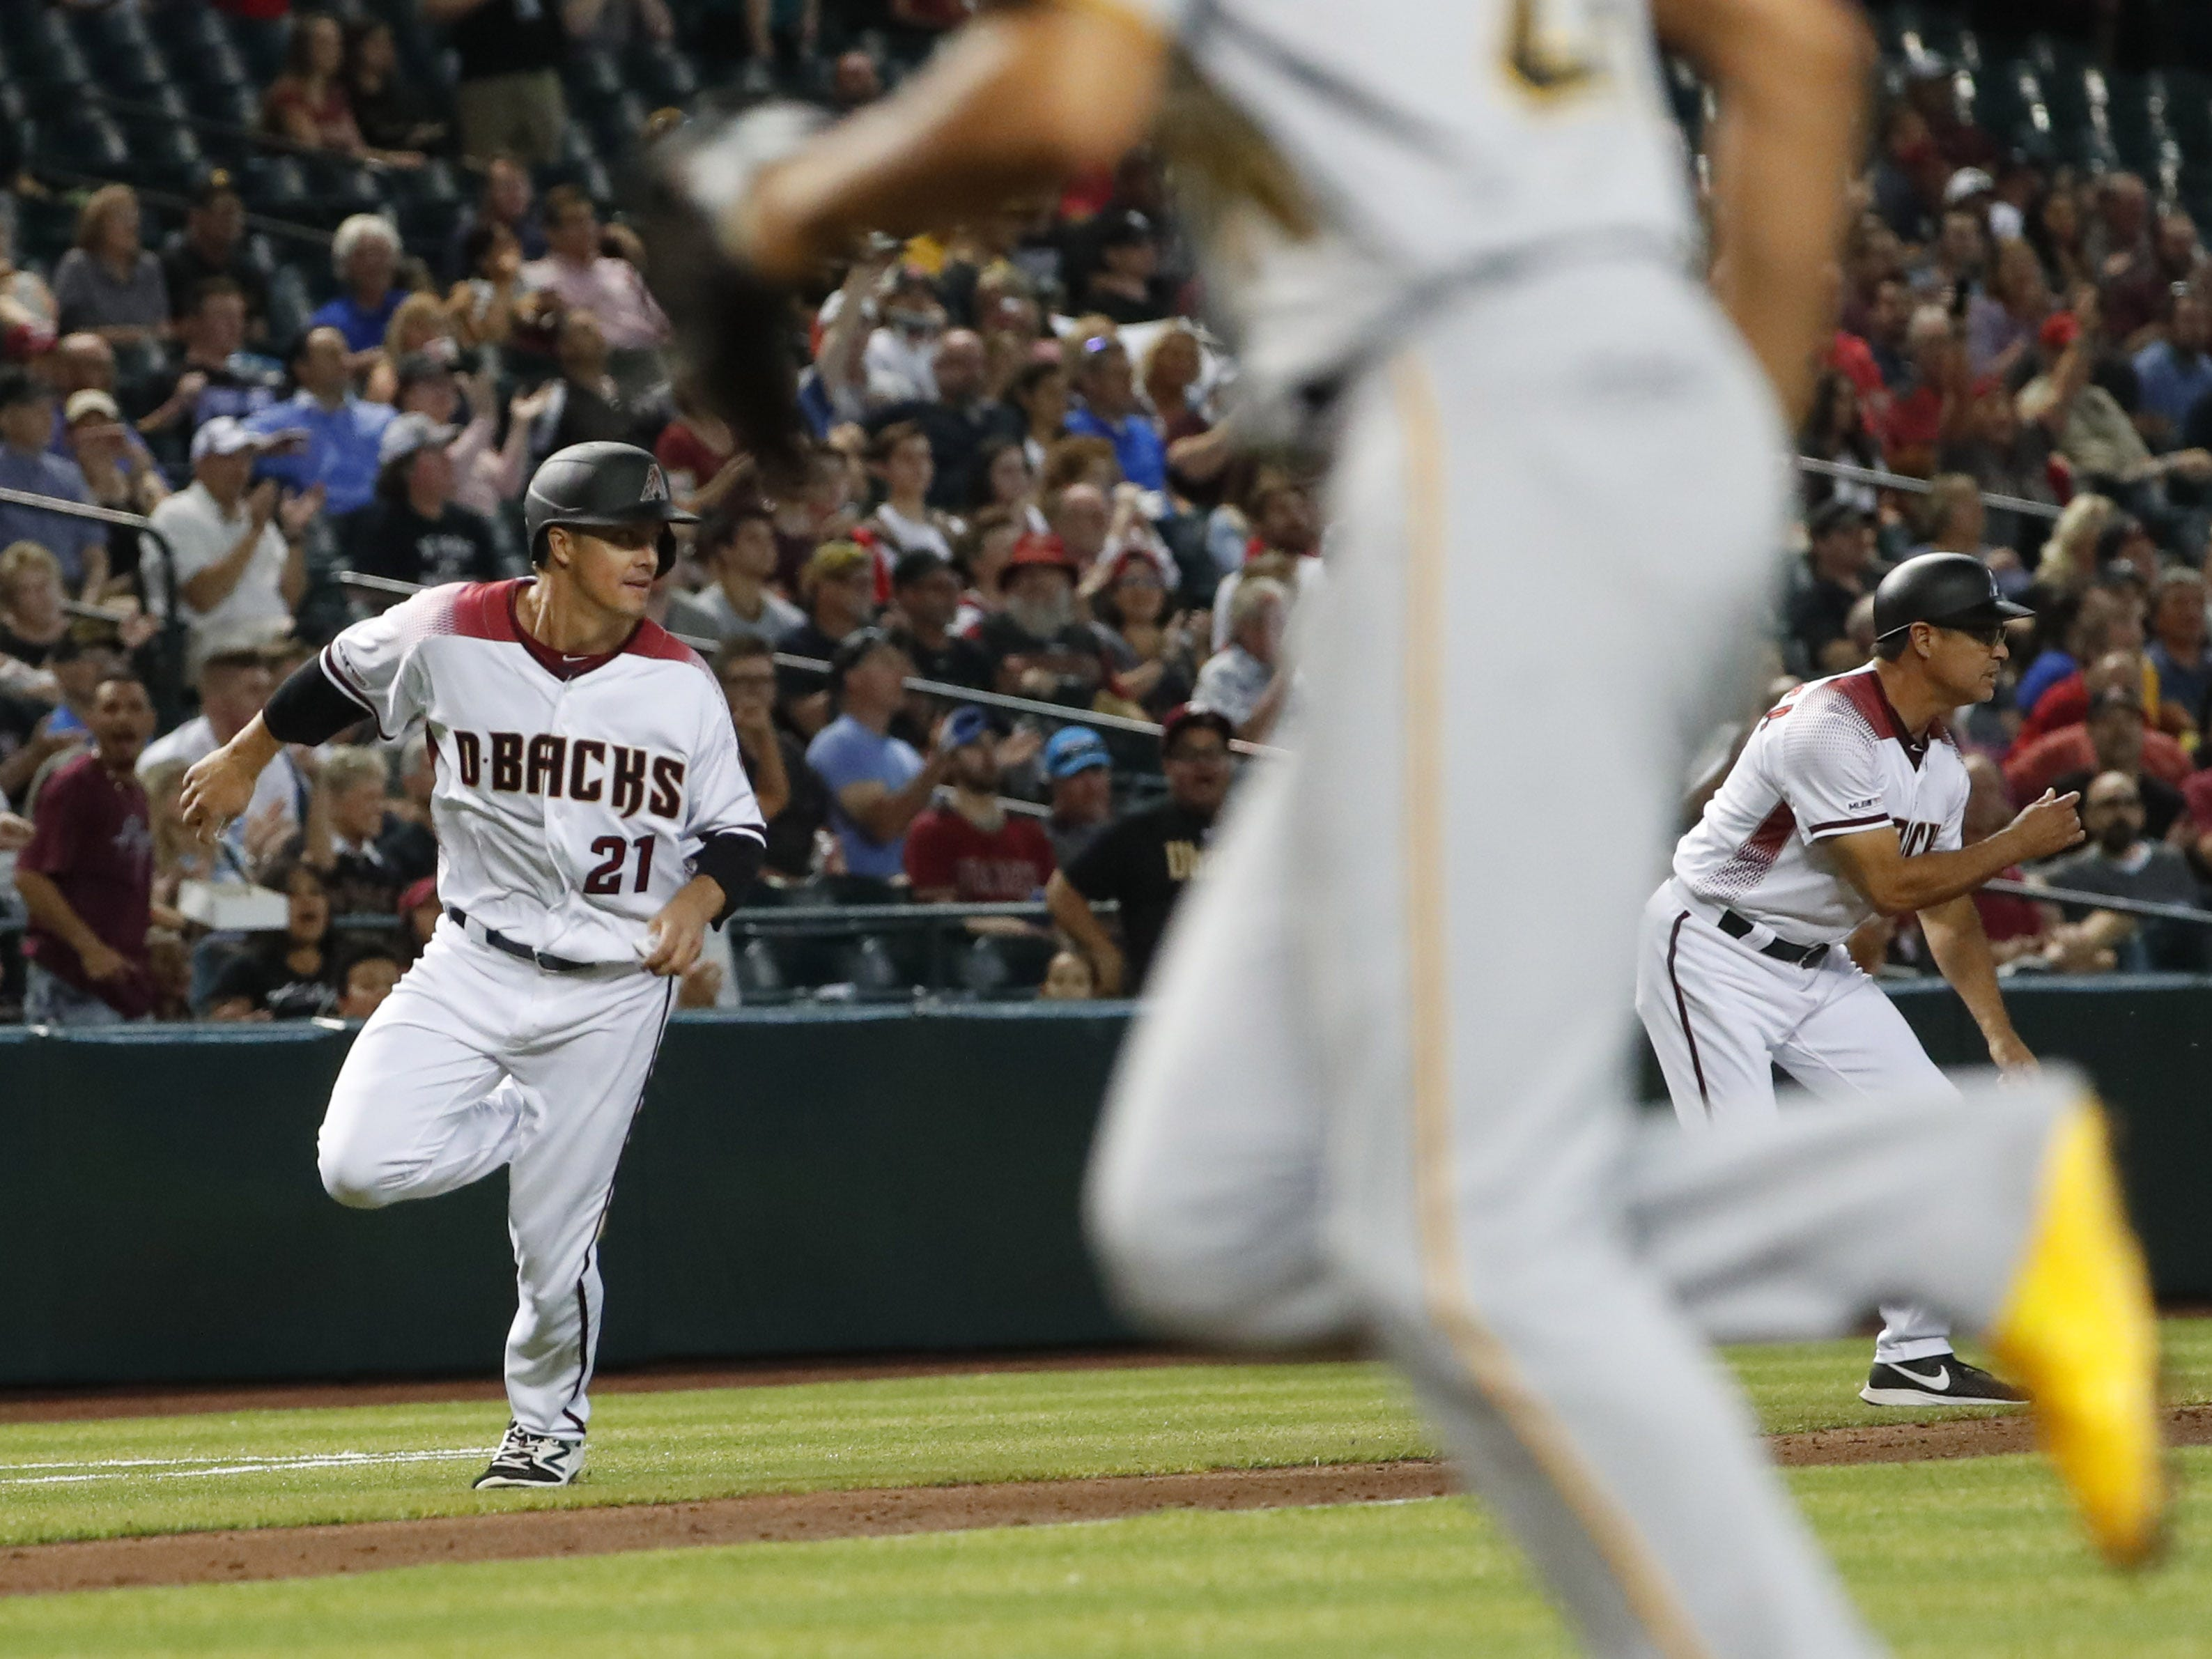 Arizona Diamondbacks' Zack Greinke (21) rounds third base before scoring against the Pittsburgh Pirates during the fourth inning. at Chase Field in Phoenix, Ariz. May 15, 2019.